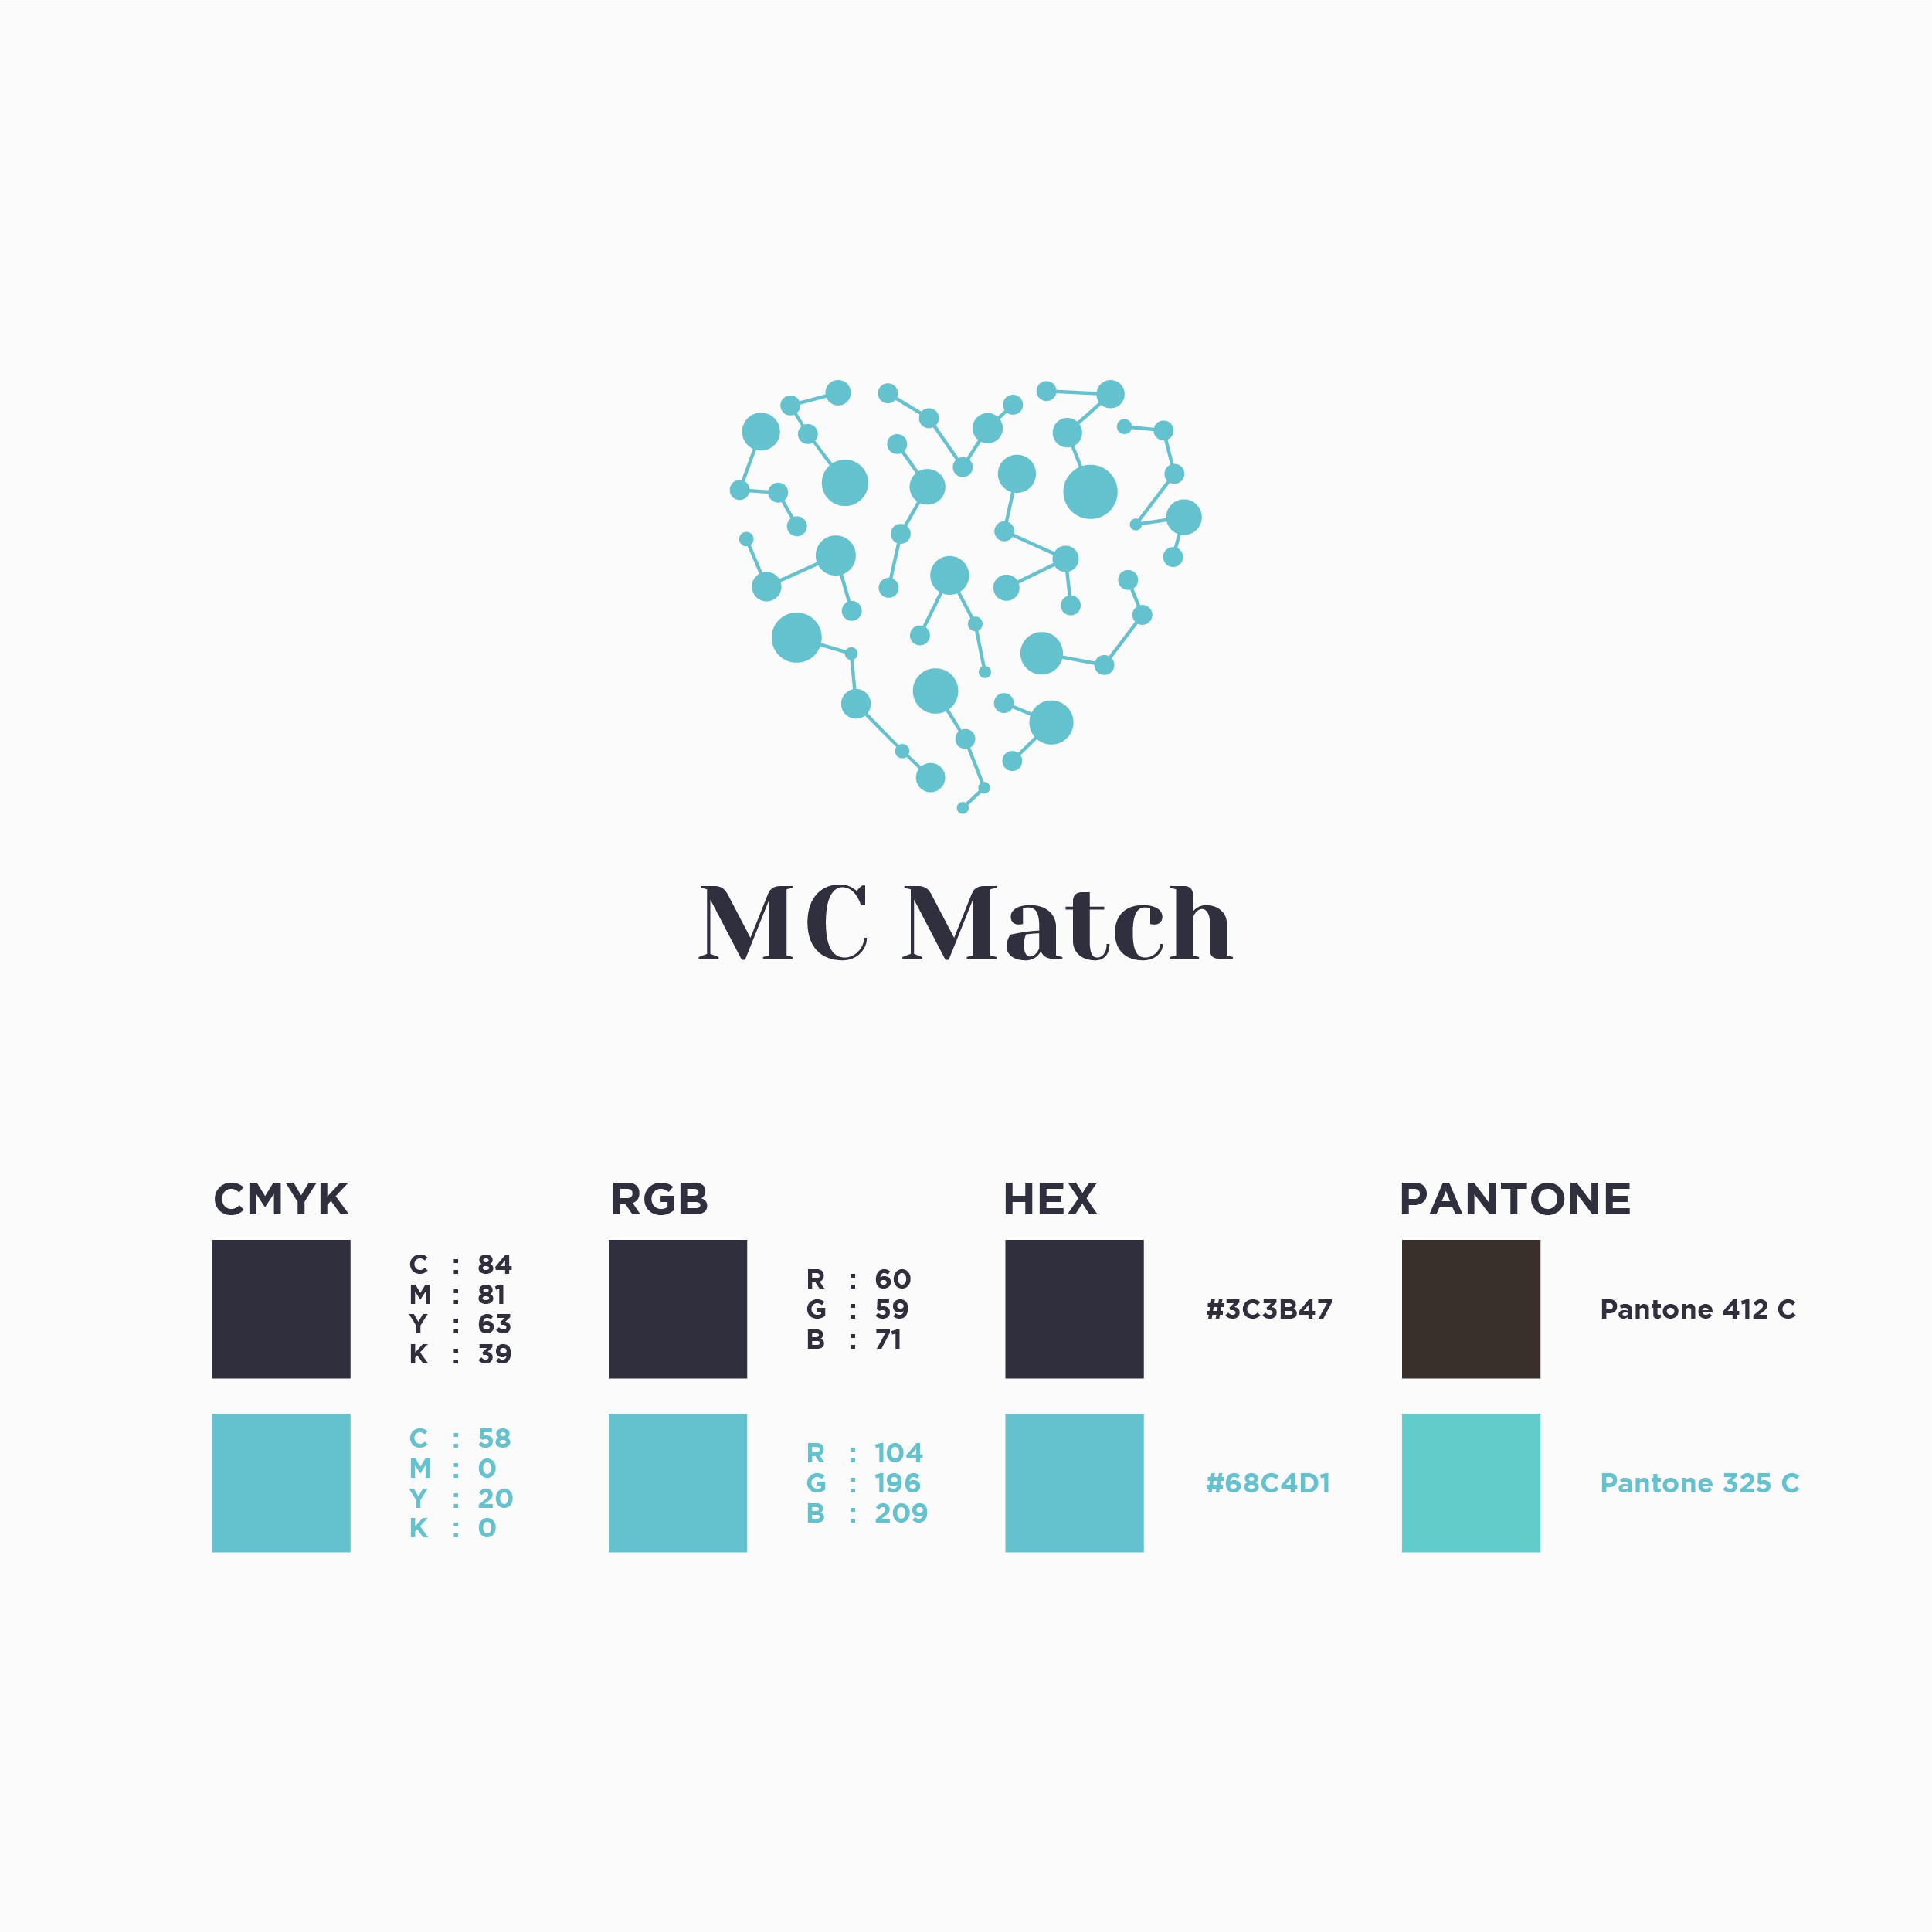 Muslim matchmaking events needs an awesome logo